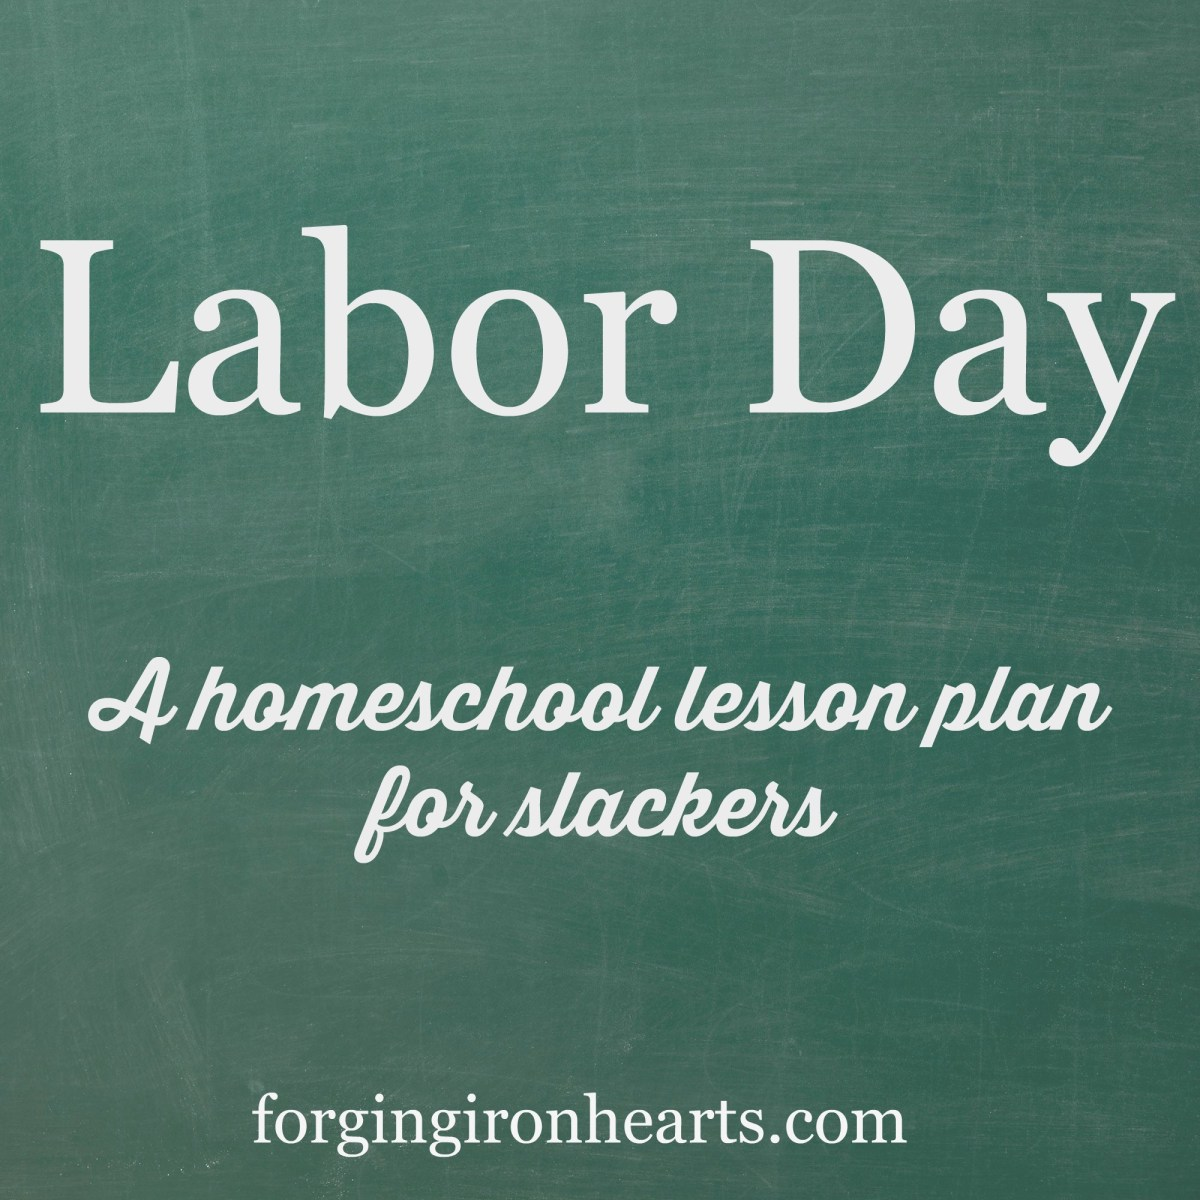 Labor Day: A Homeschool Lesson Plan For Slackers